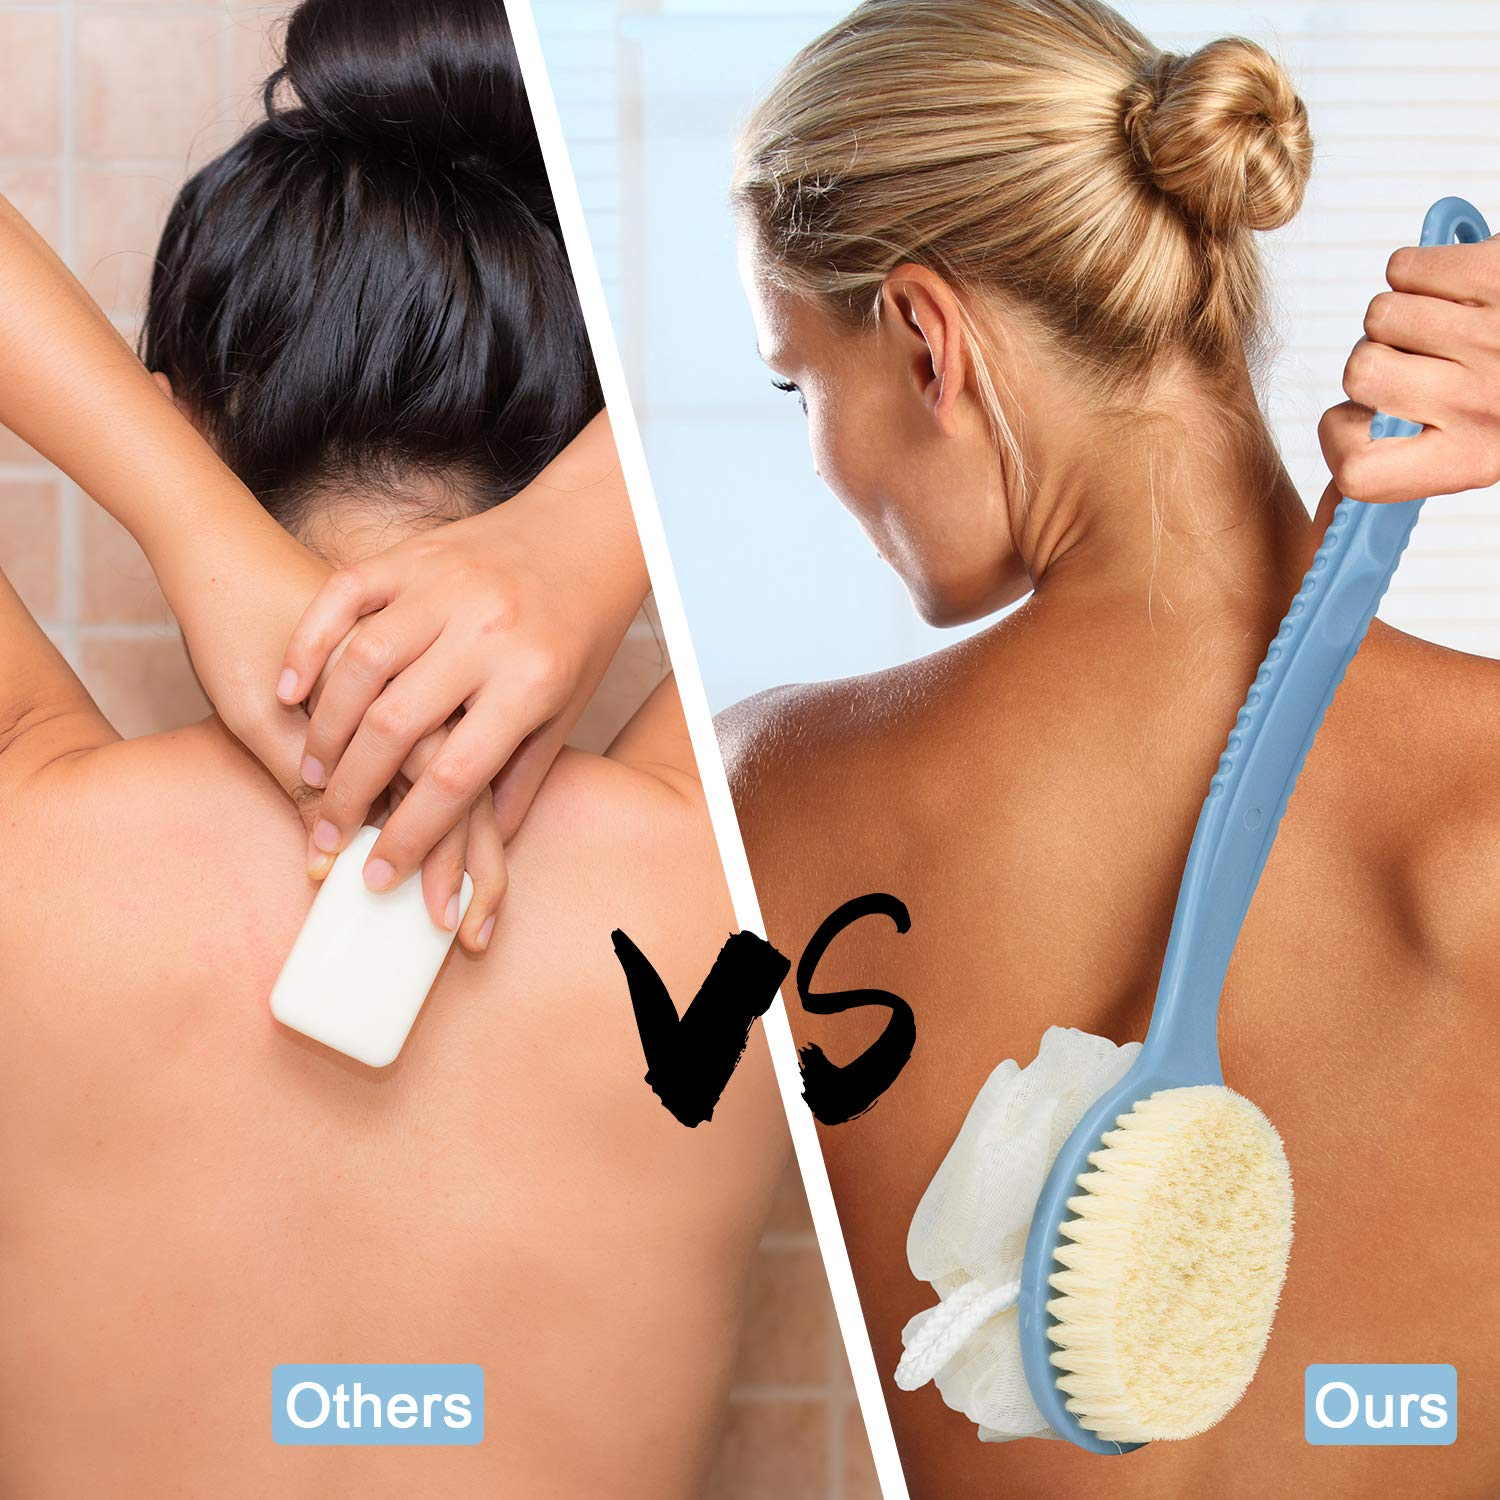 EAONE 2 PACK Shower Body Brush with Bristles and Loofah, Back Scrubber Long Handle Exfoliating Brush for Wet or Dry (Blue&White) : Beauty